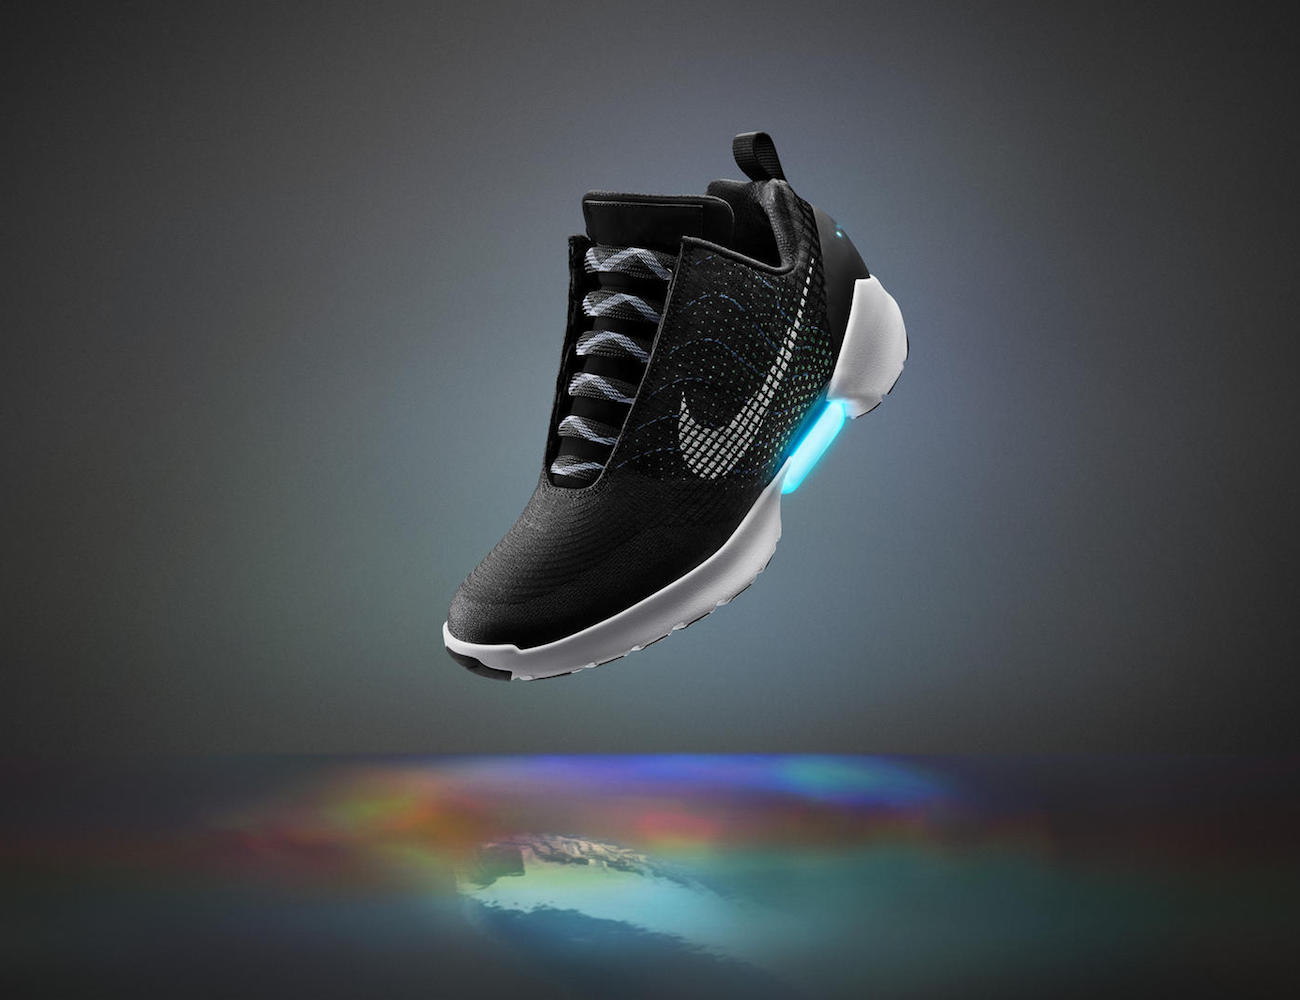 hyperadapt-self-tying-sneakers-by-nike-01